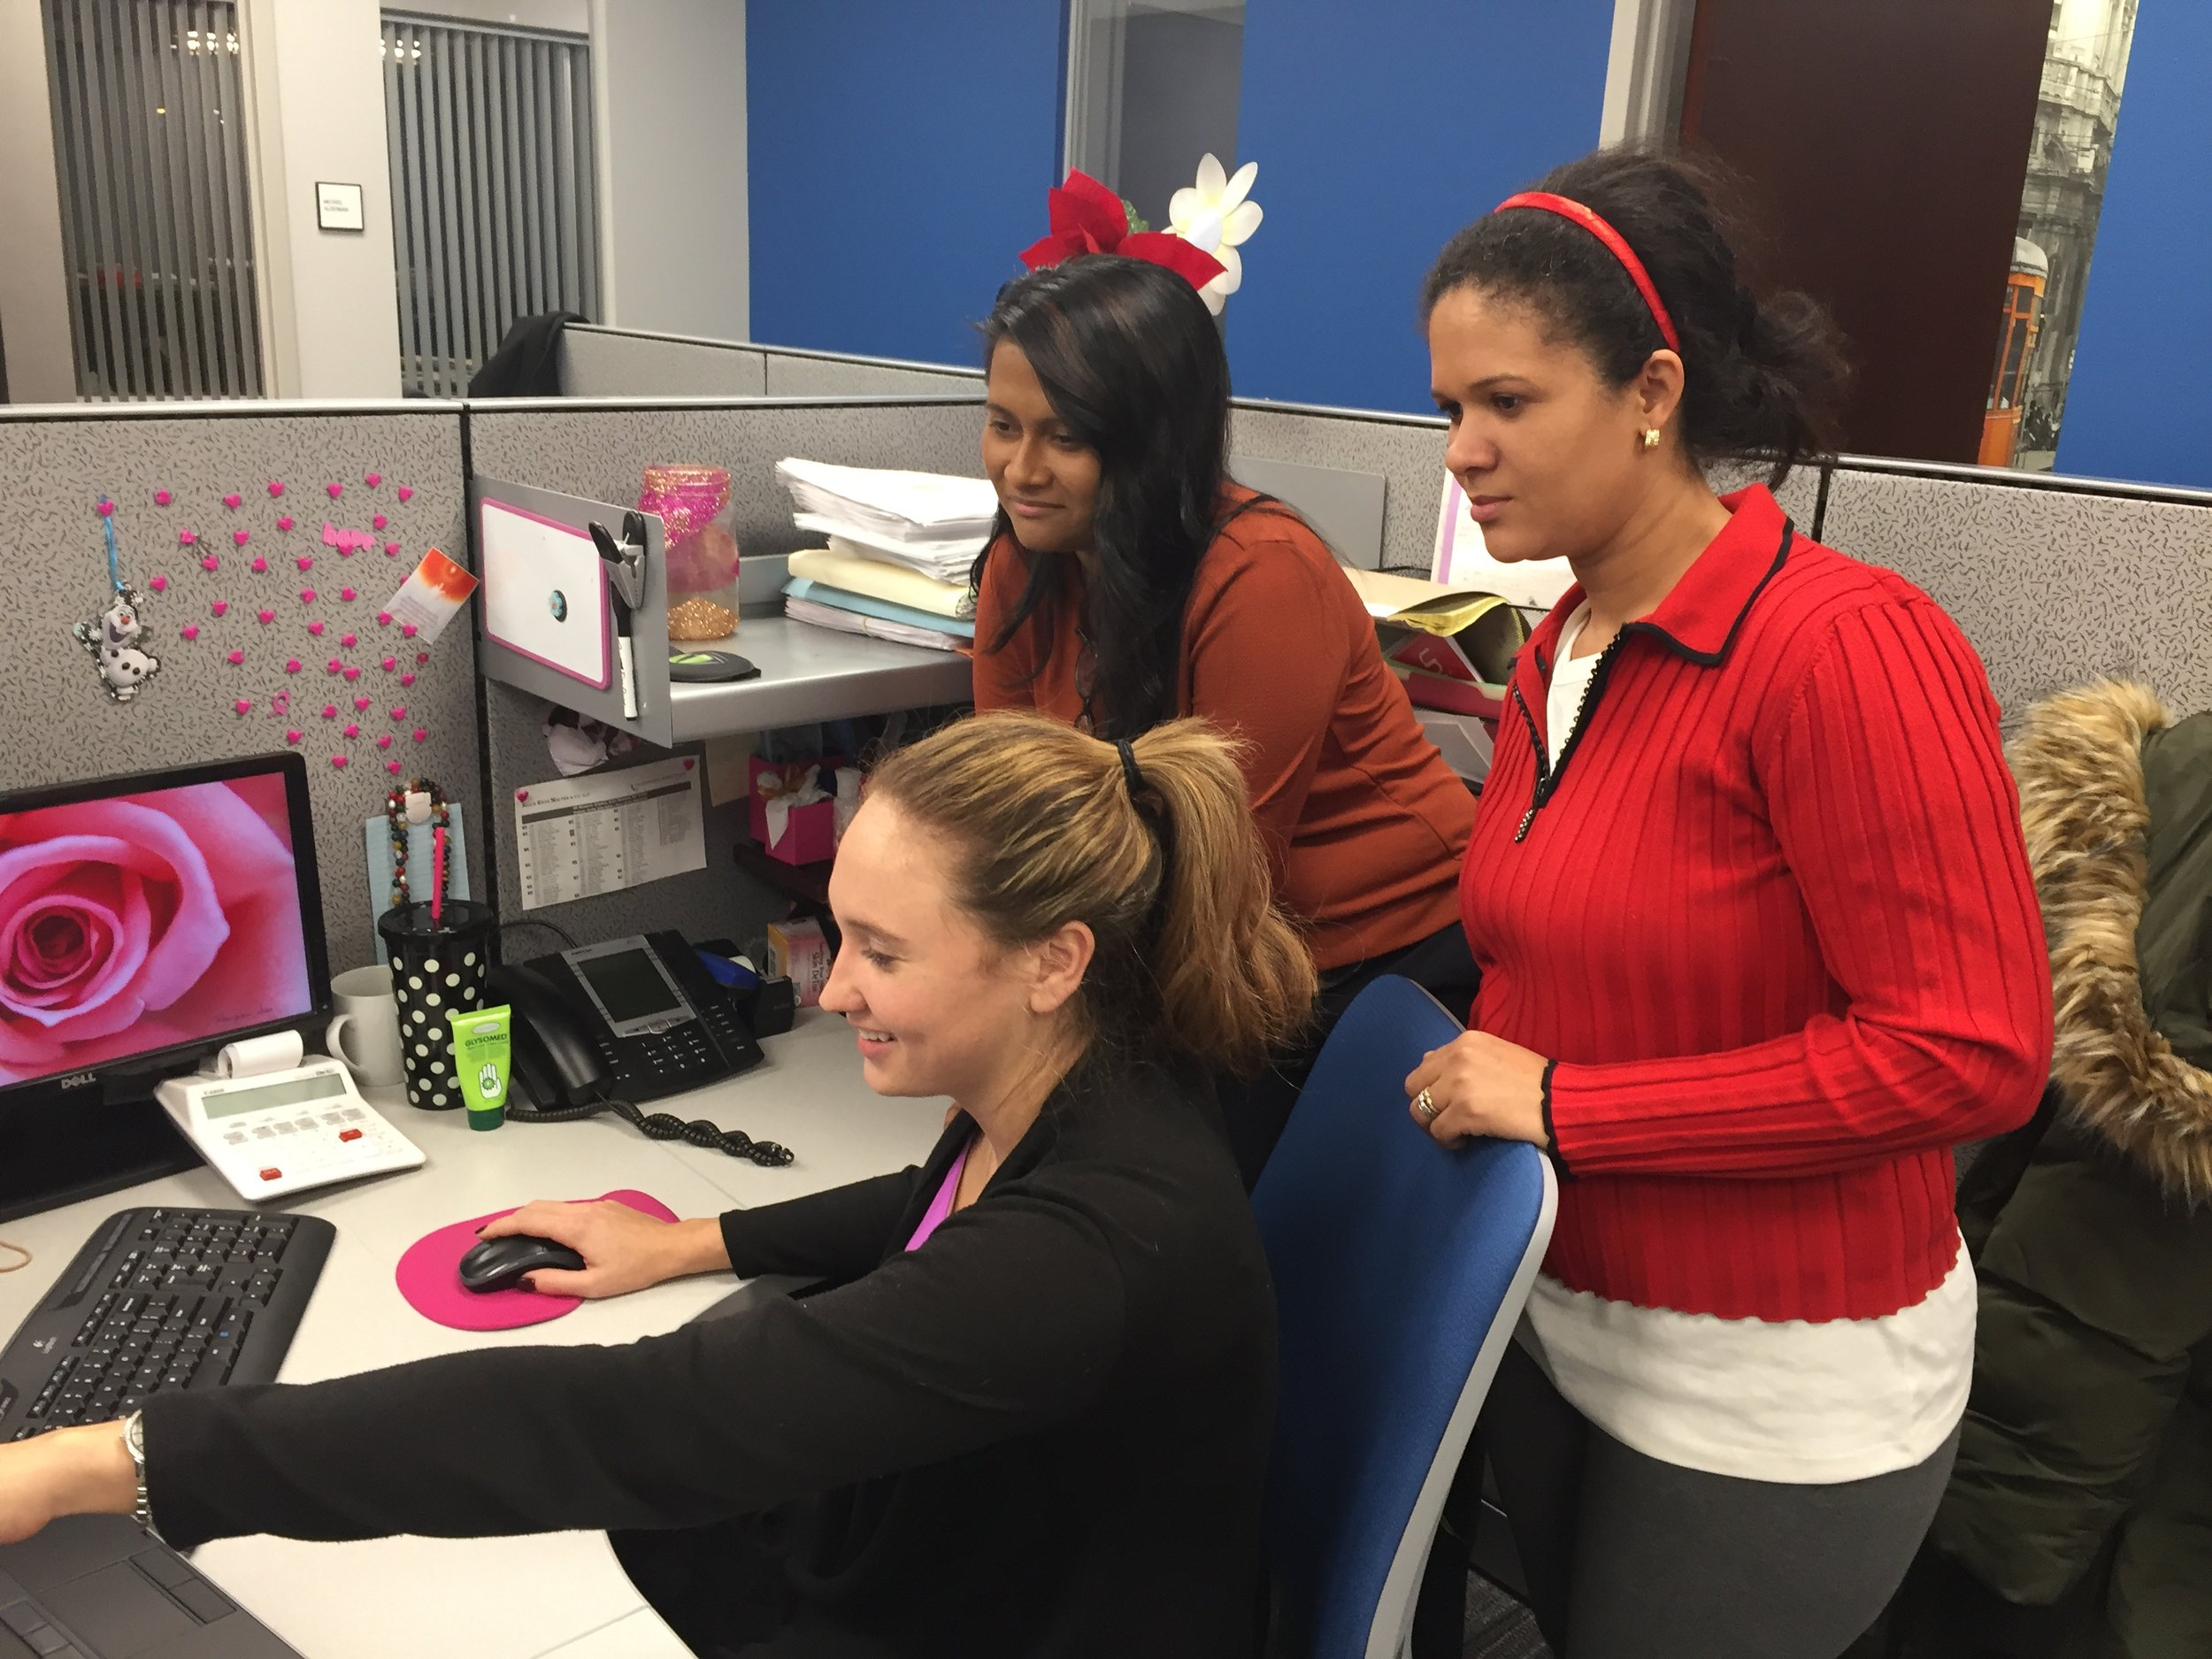 Michelle Greco demonstrates software for Margaret Daniel and Mercedes Sanchez